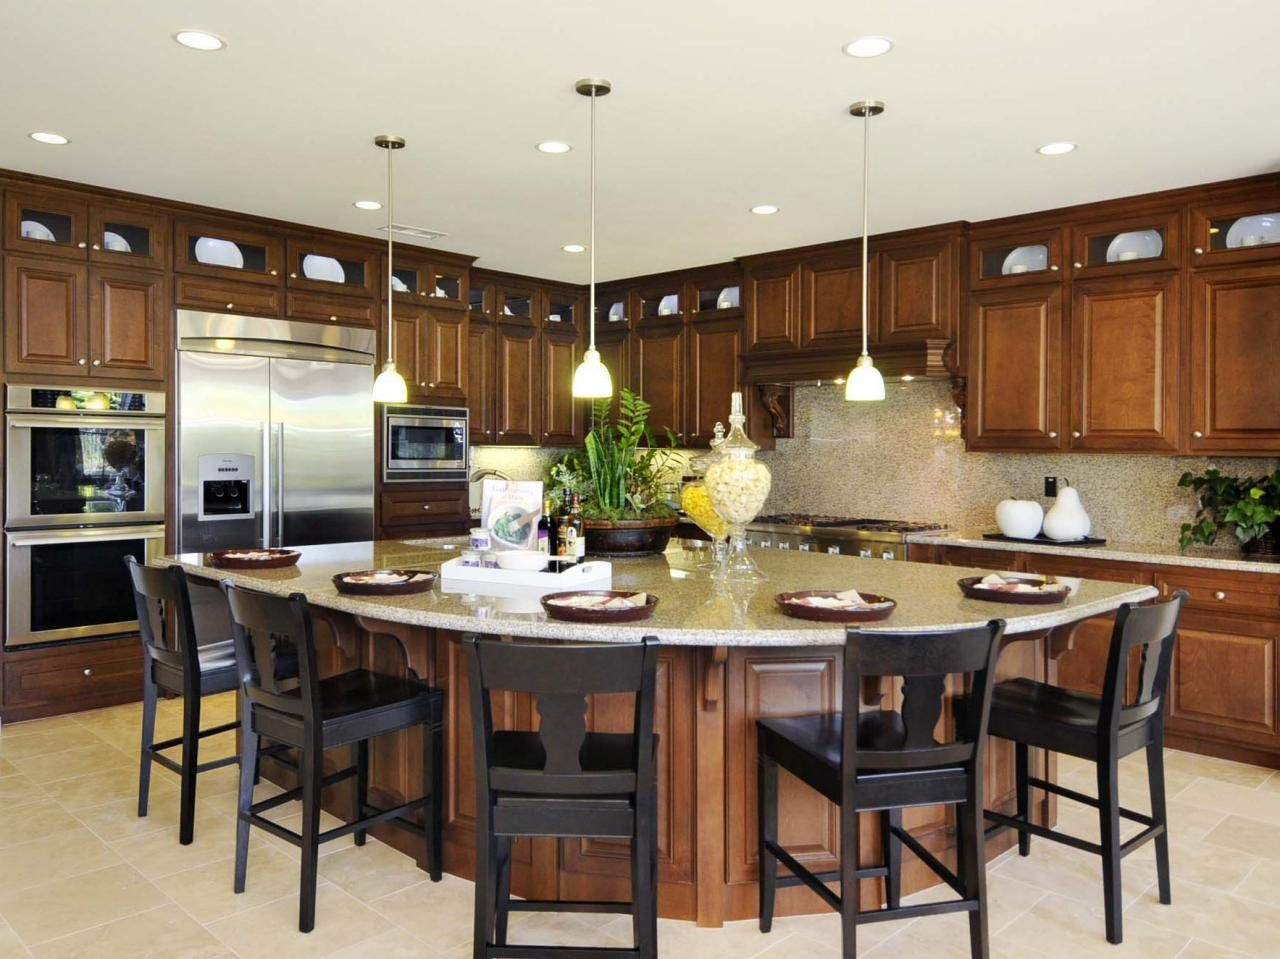 Kitchen island design ideas pictures options tips kitchen designs choose kitchen layouts remodeling materials hgtv